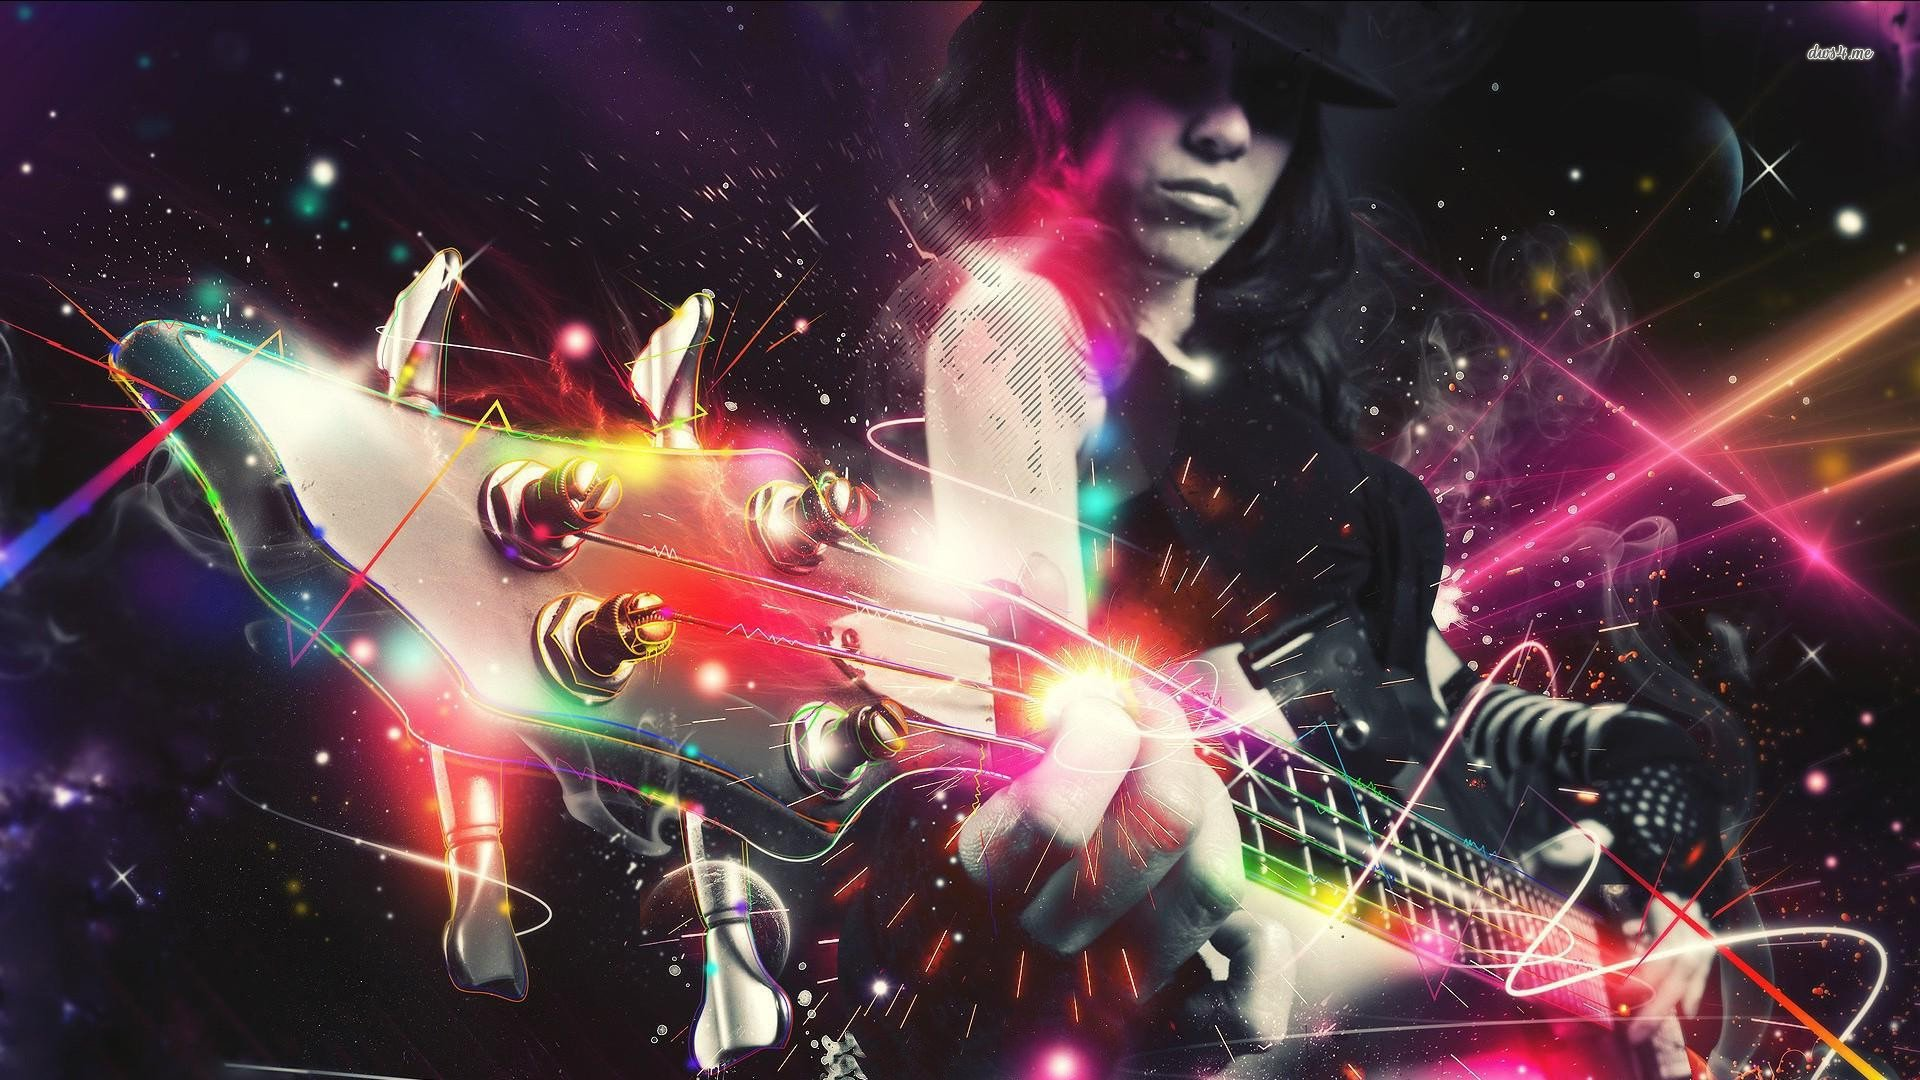 Rockstar Movie Hd Wallpapers - Fb Cover Photo Hd Guitar , HD Wallpaper & Backgrounds